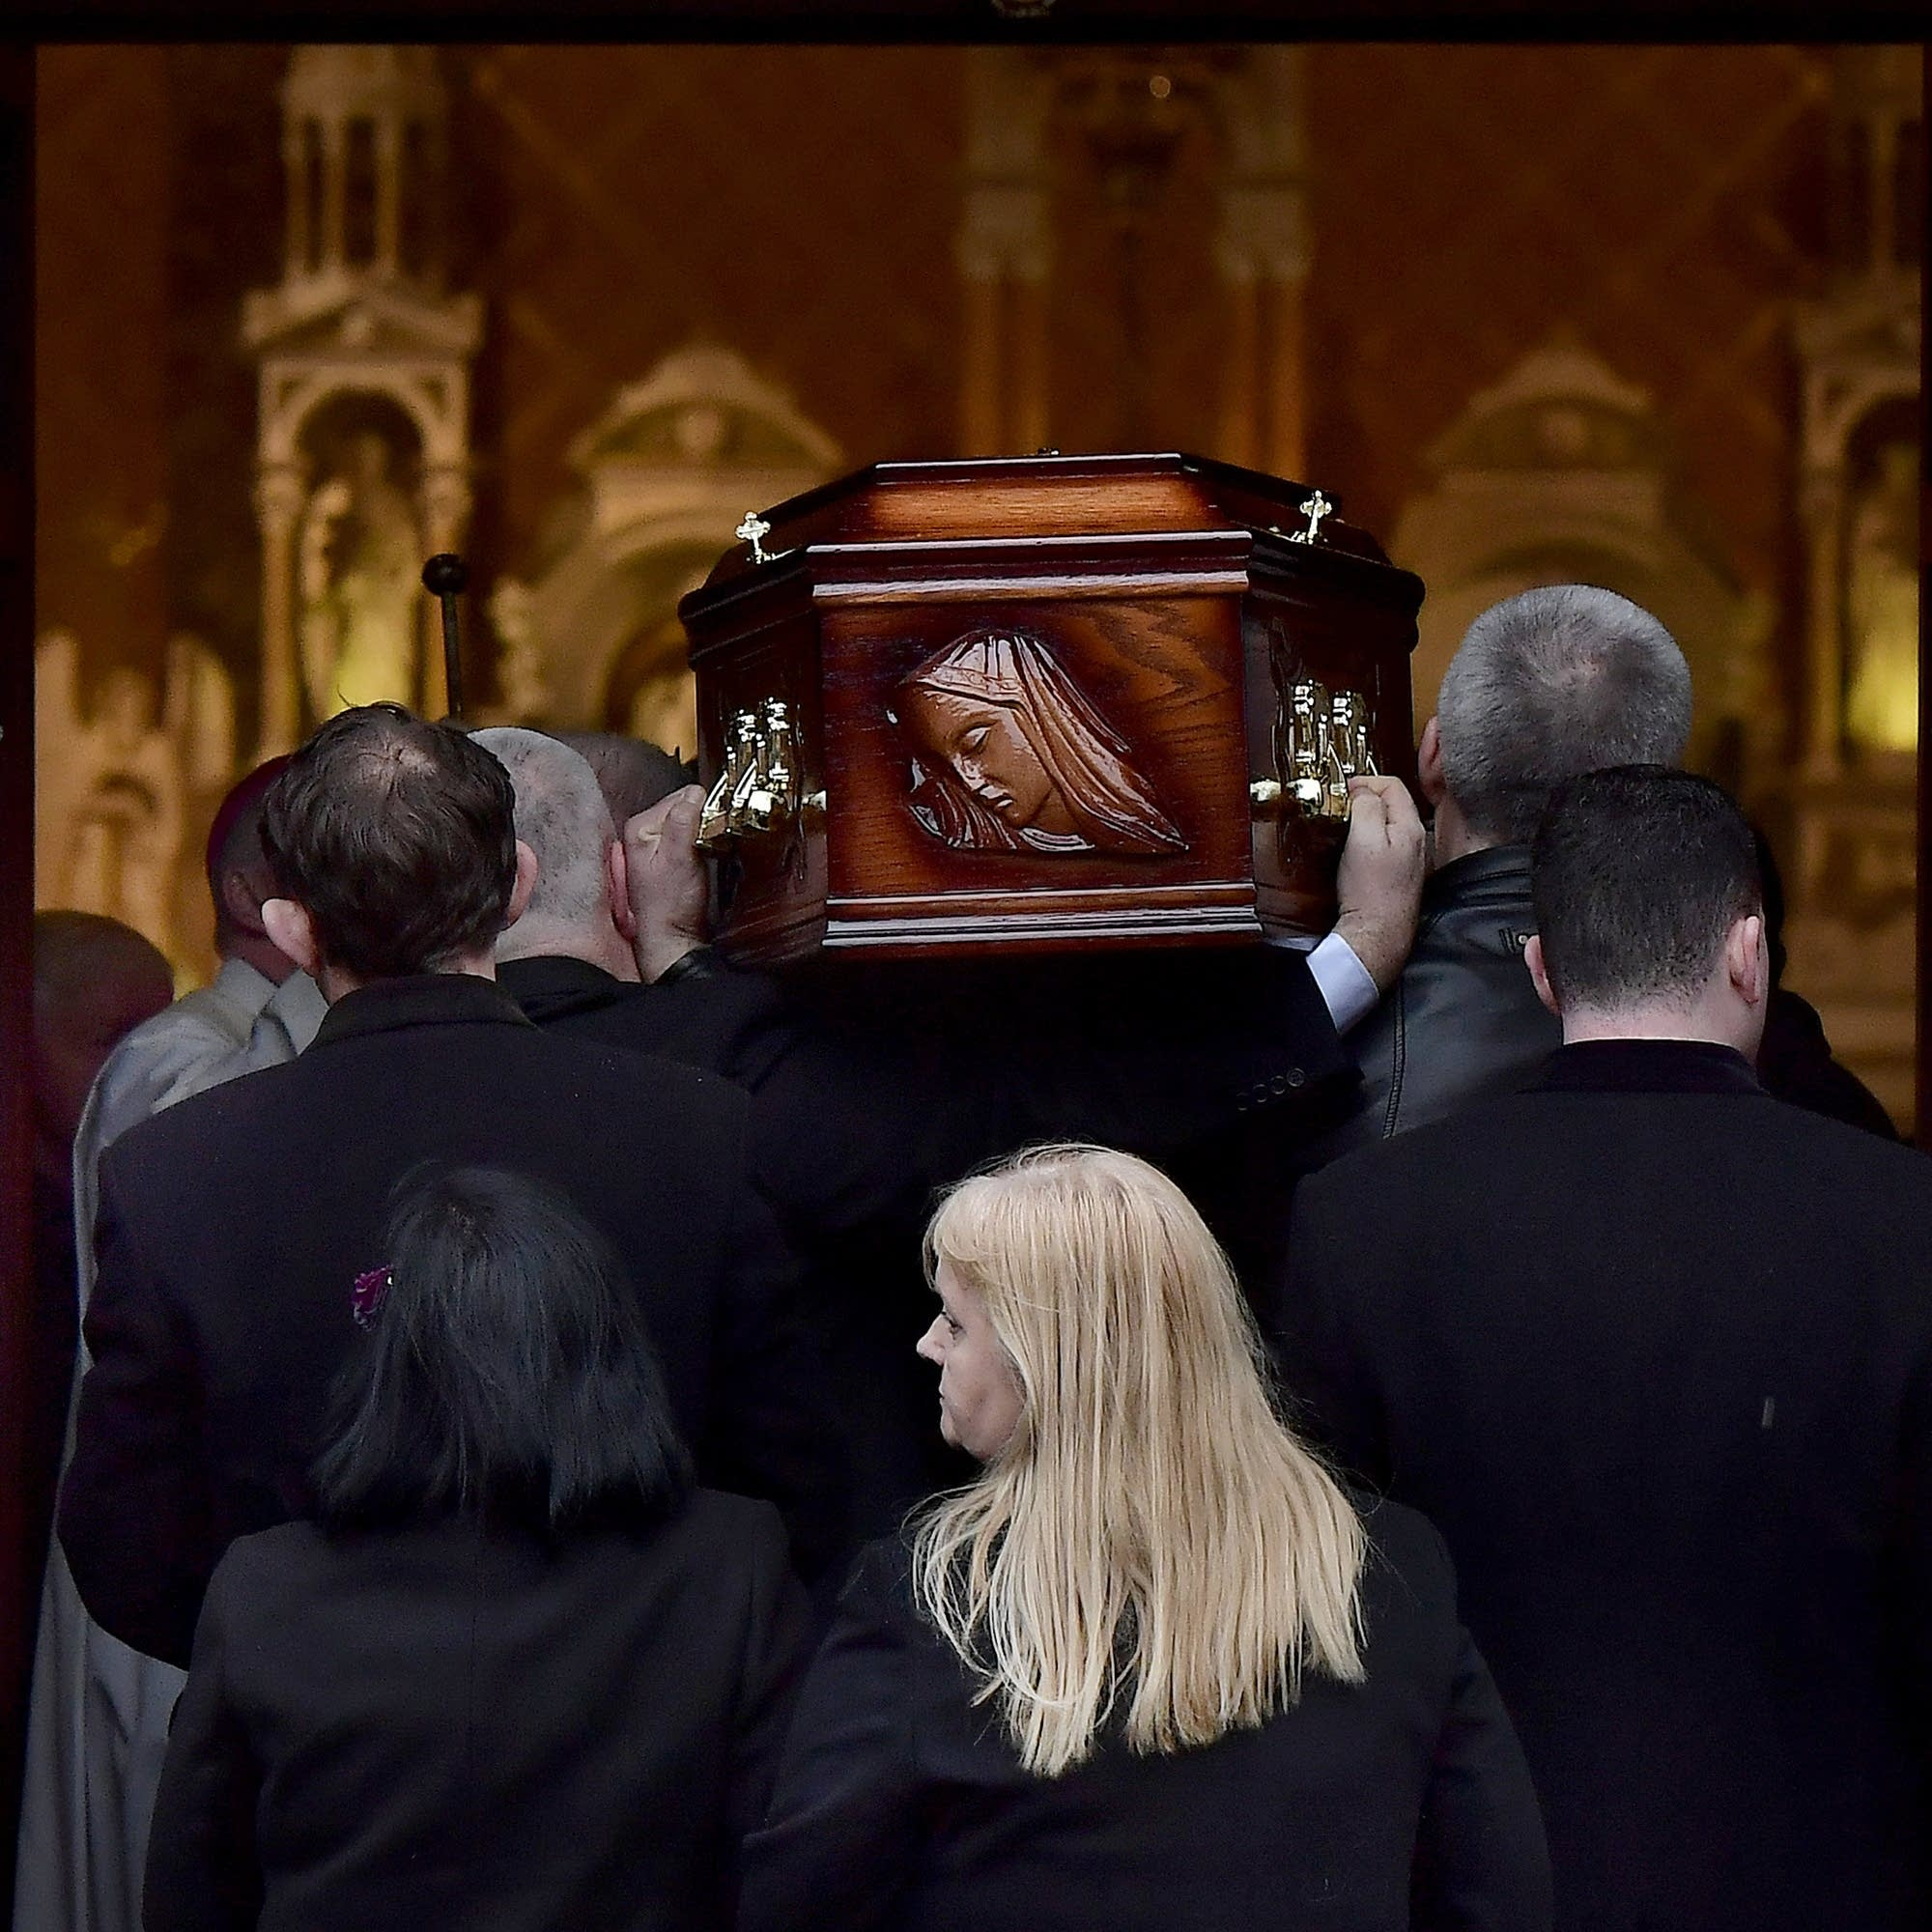 Dolores O'Riordan's casket is carried into a church in Ireland.